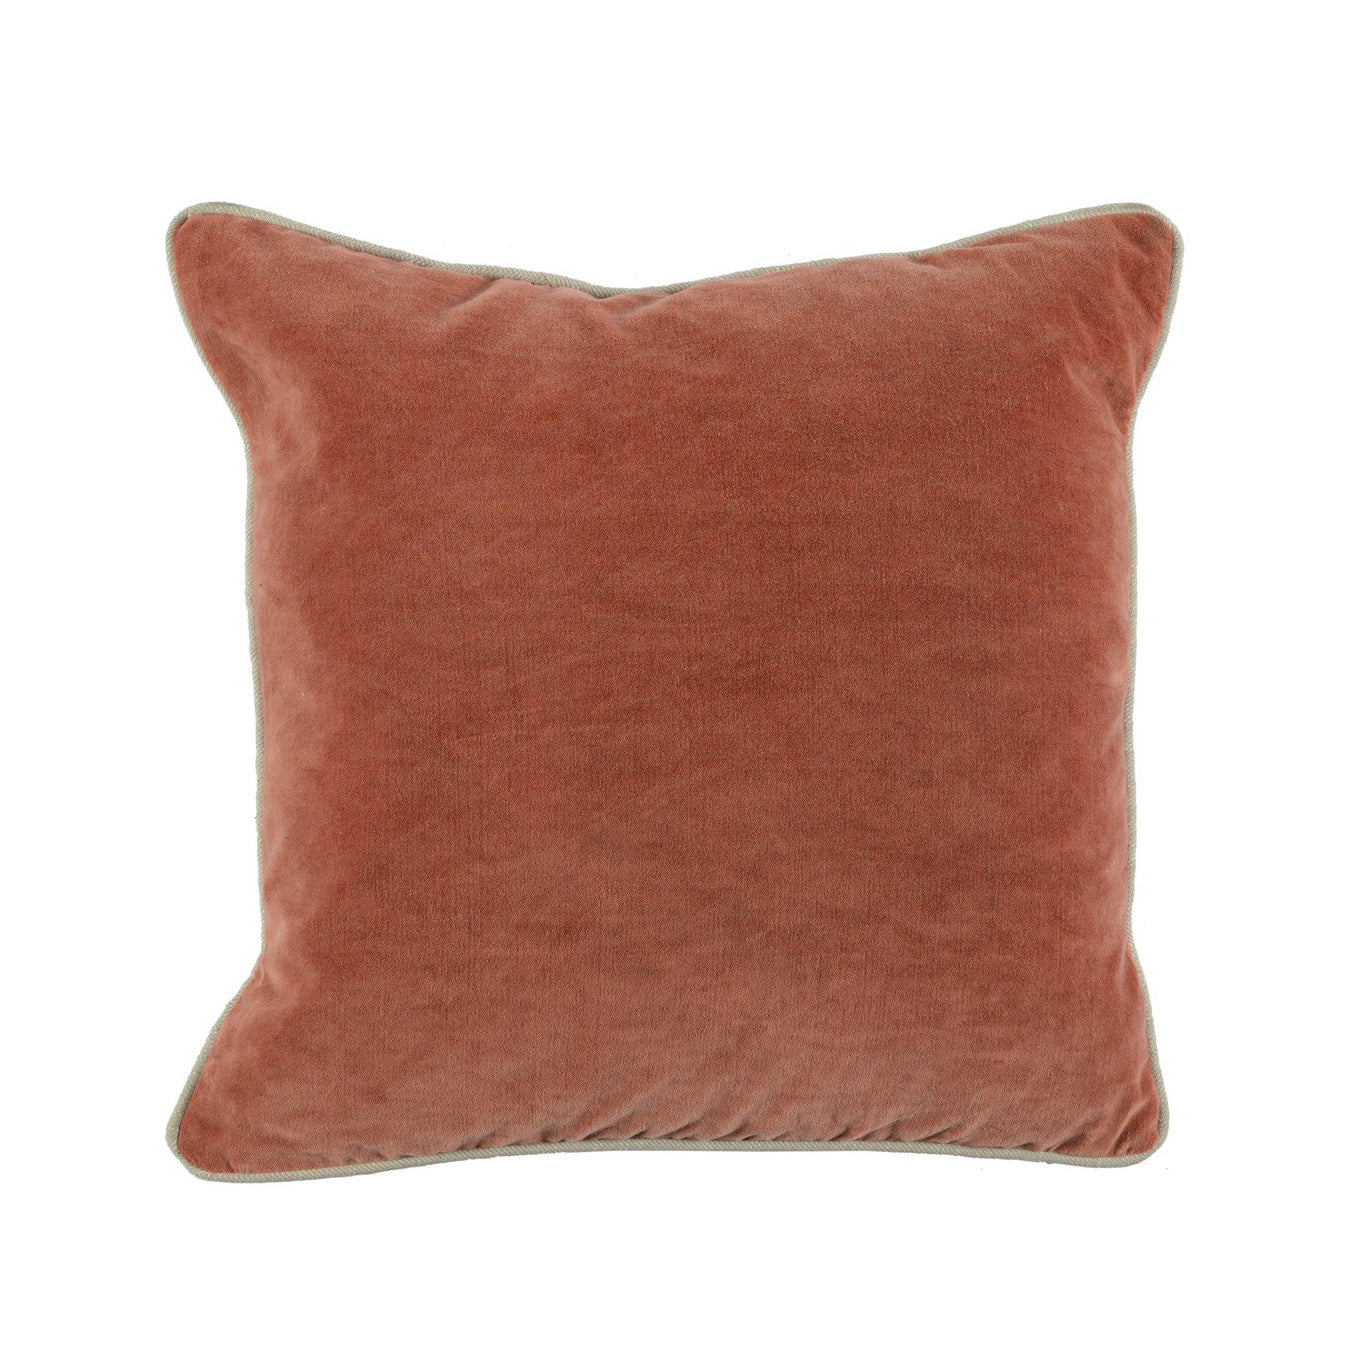 Terra Cotta Velvet Pillow